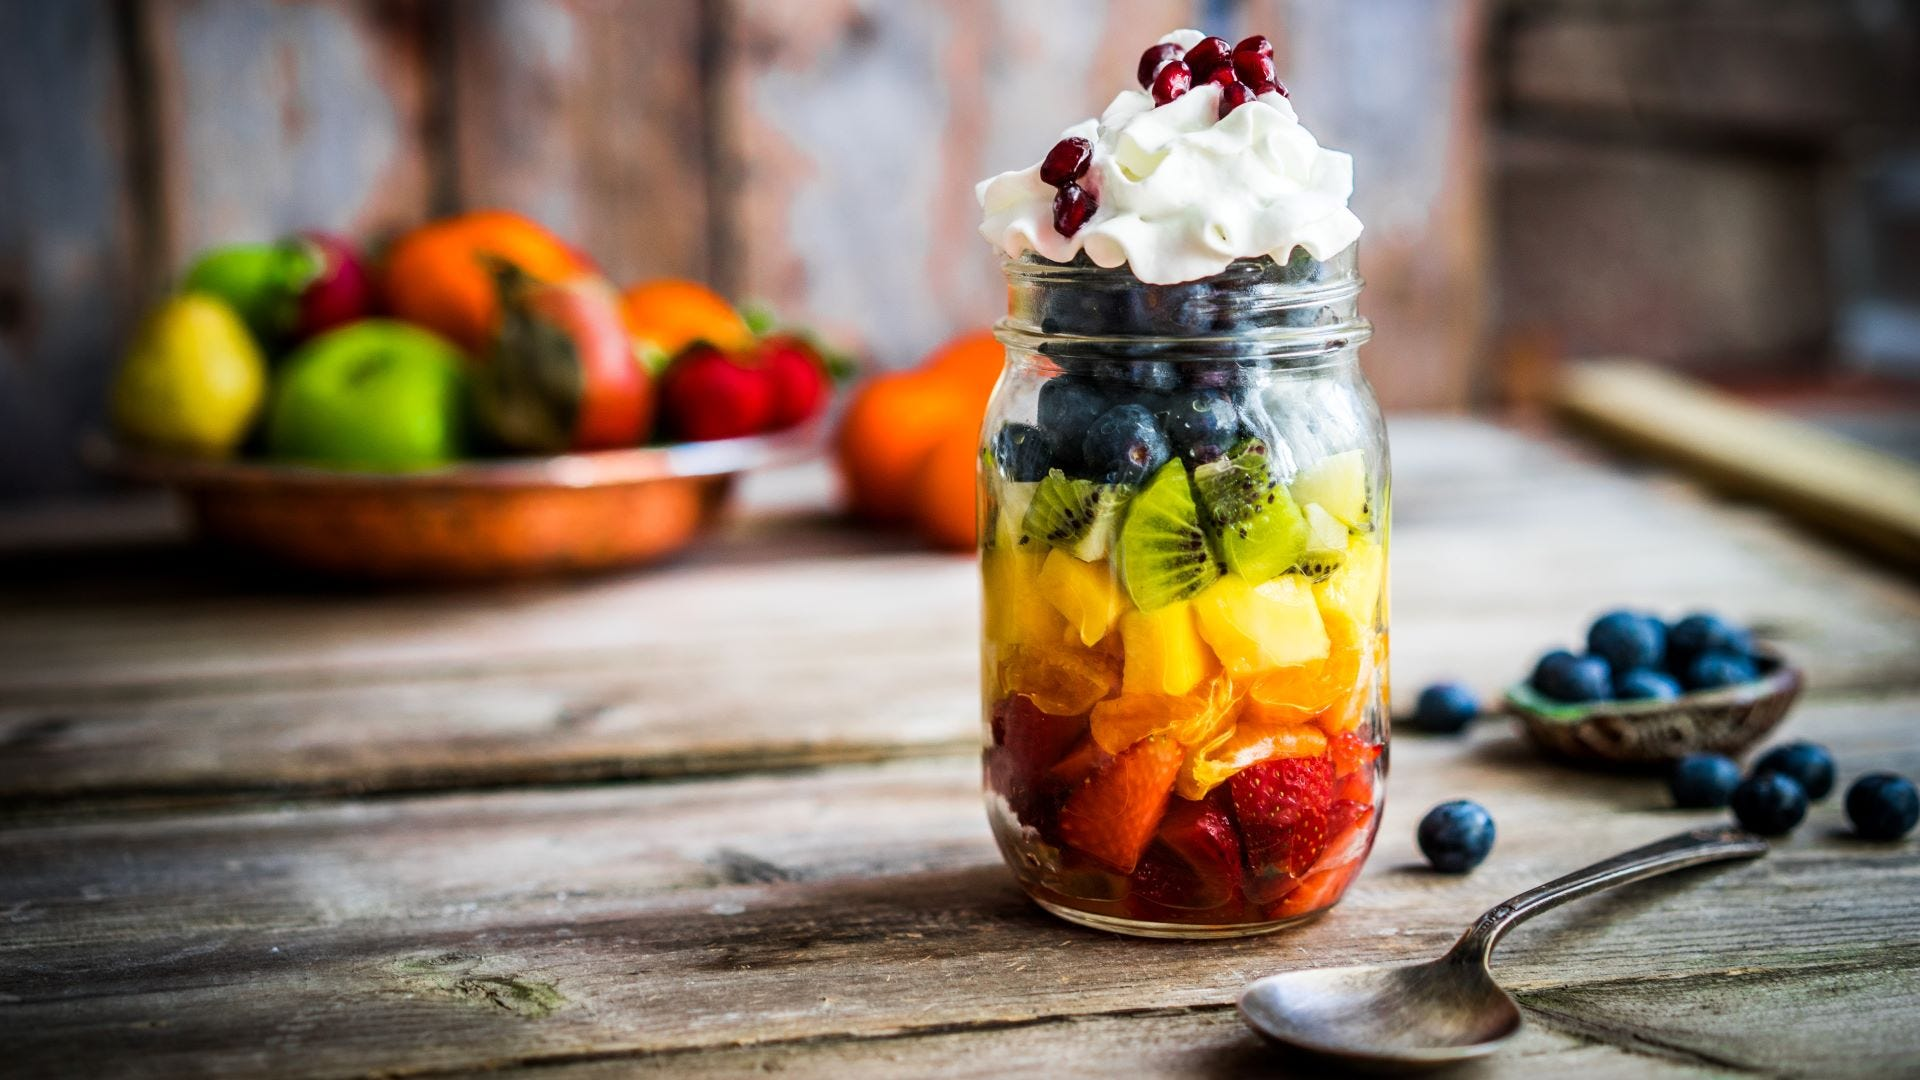 A fruit salad parfait in a jar topped with whipped cream and berries.